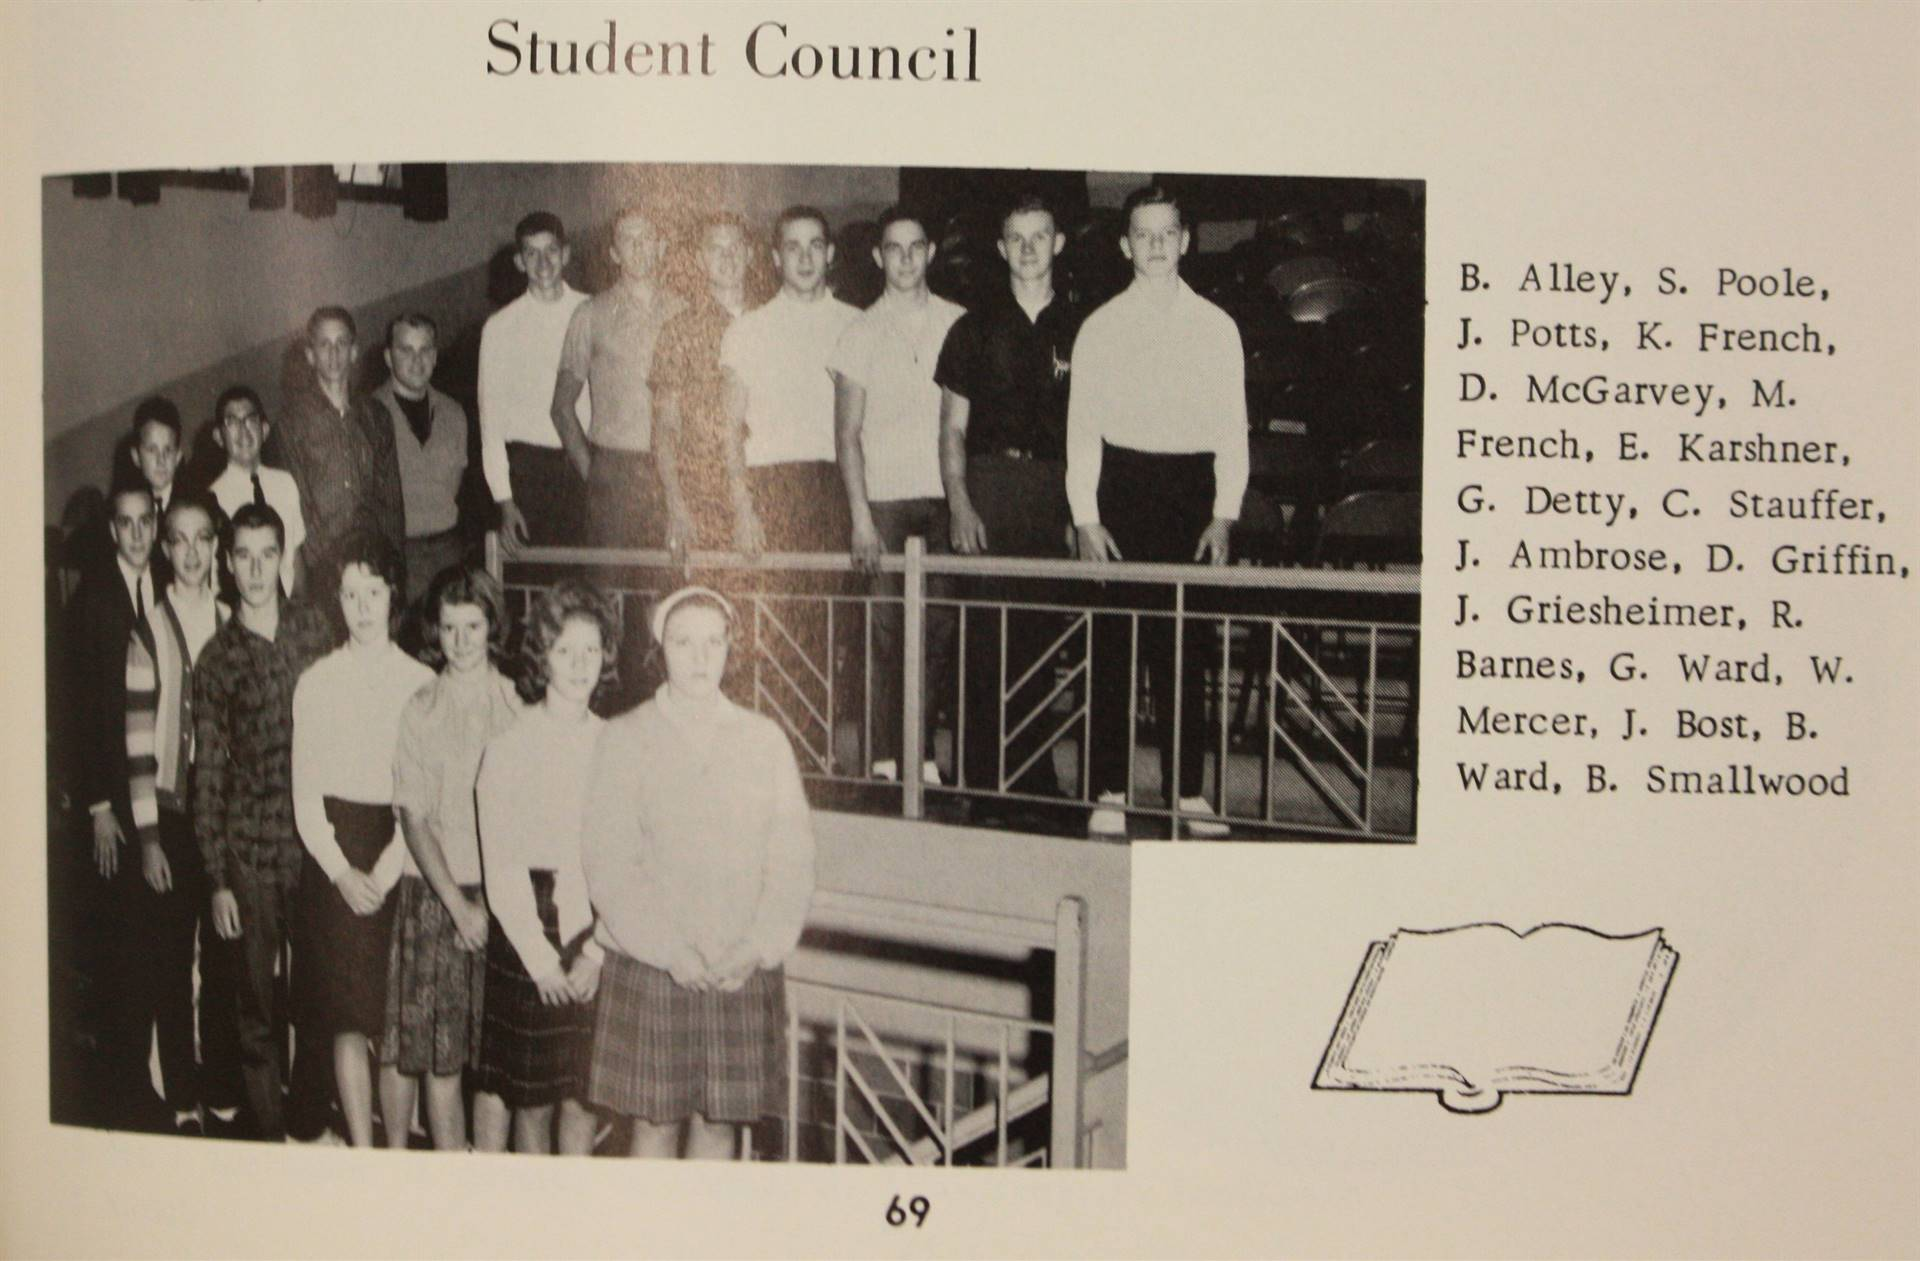 1965 student council